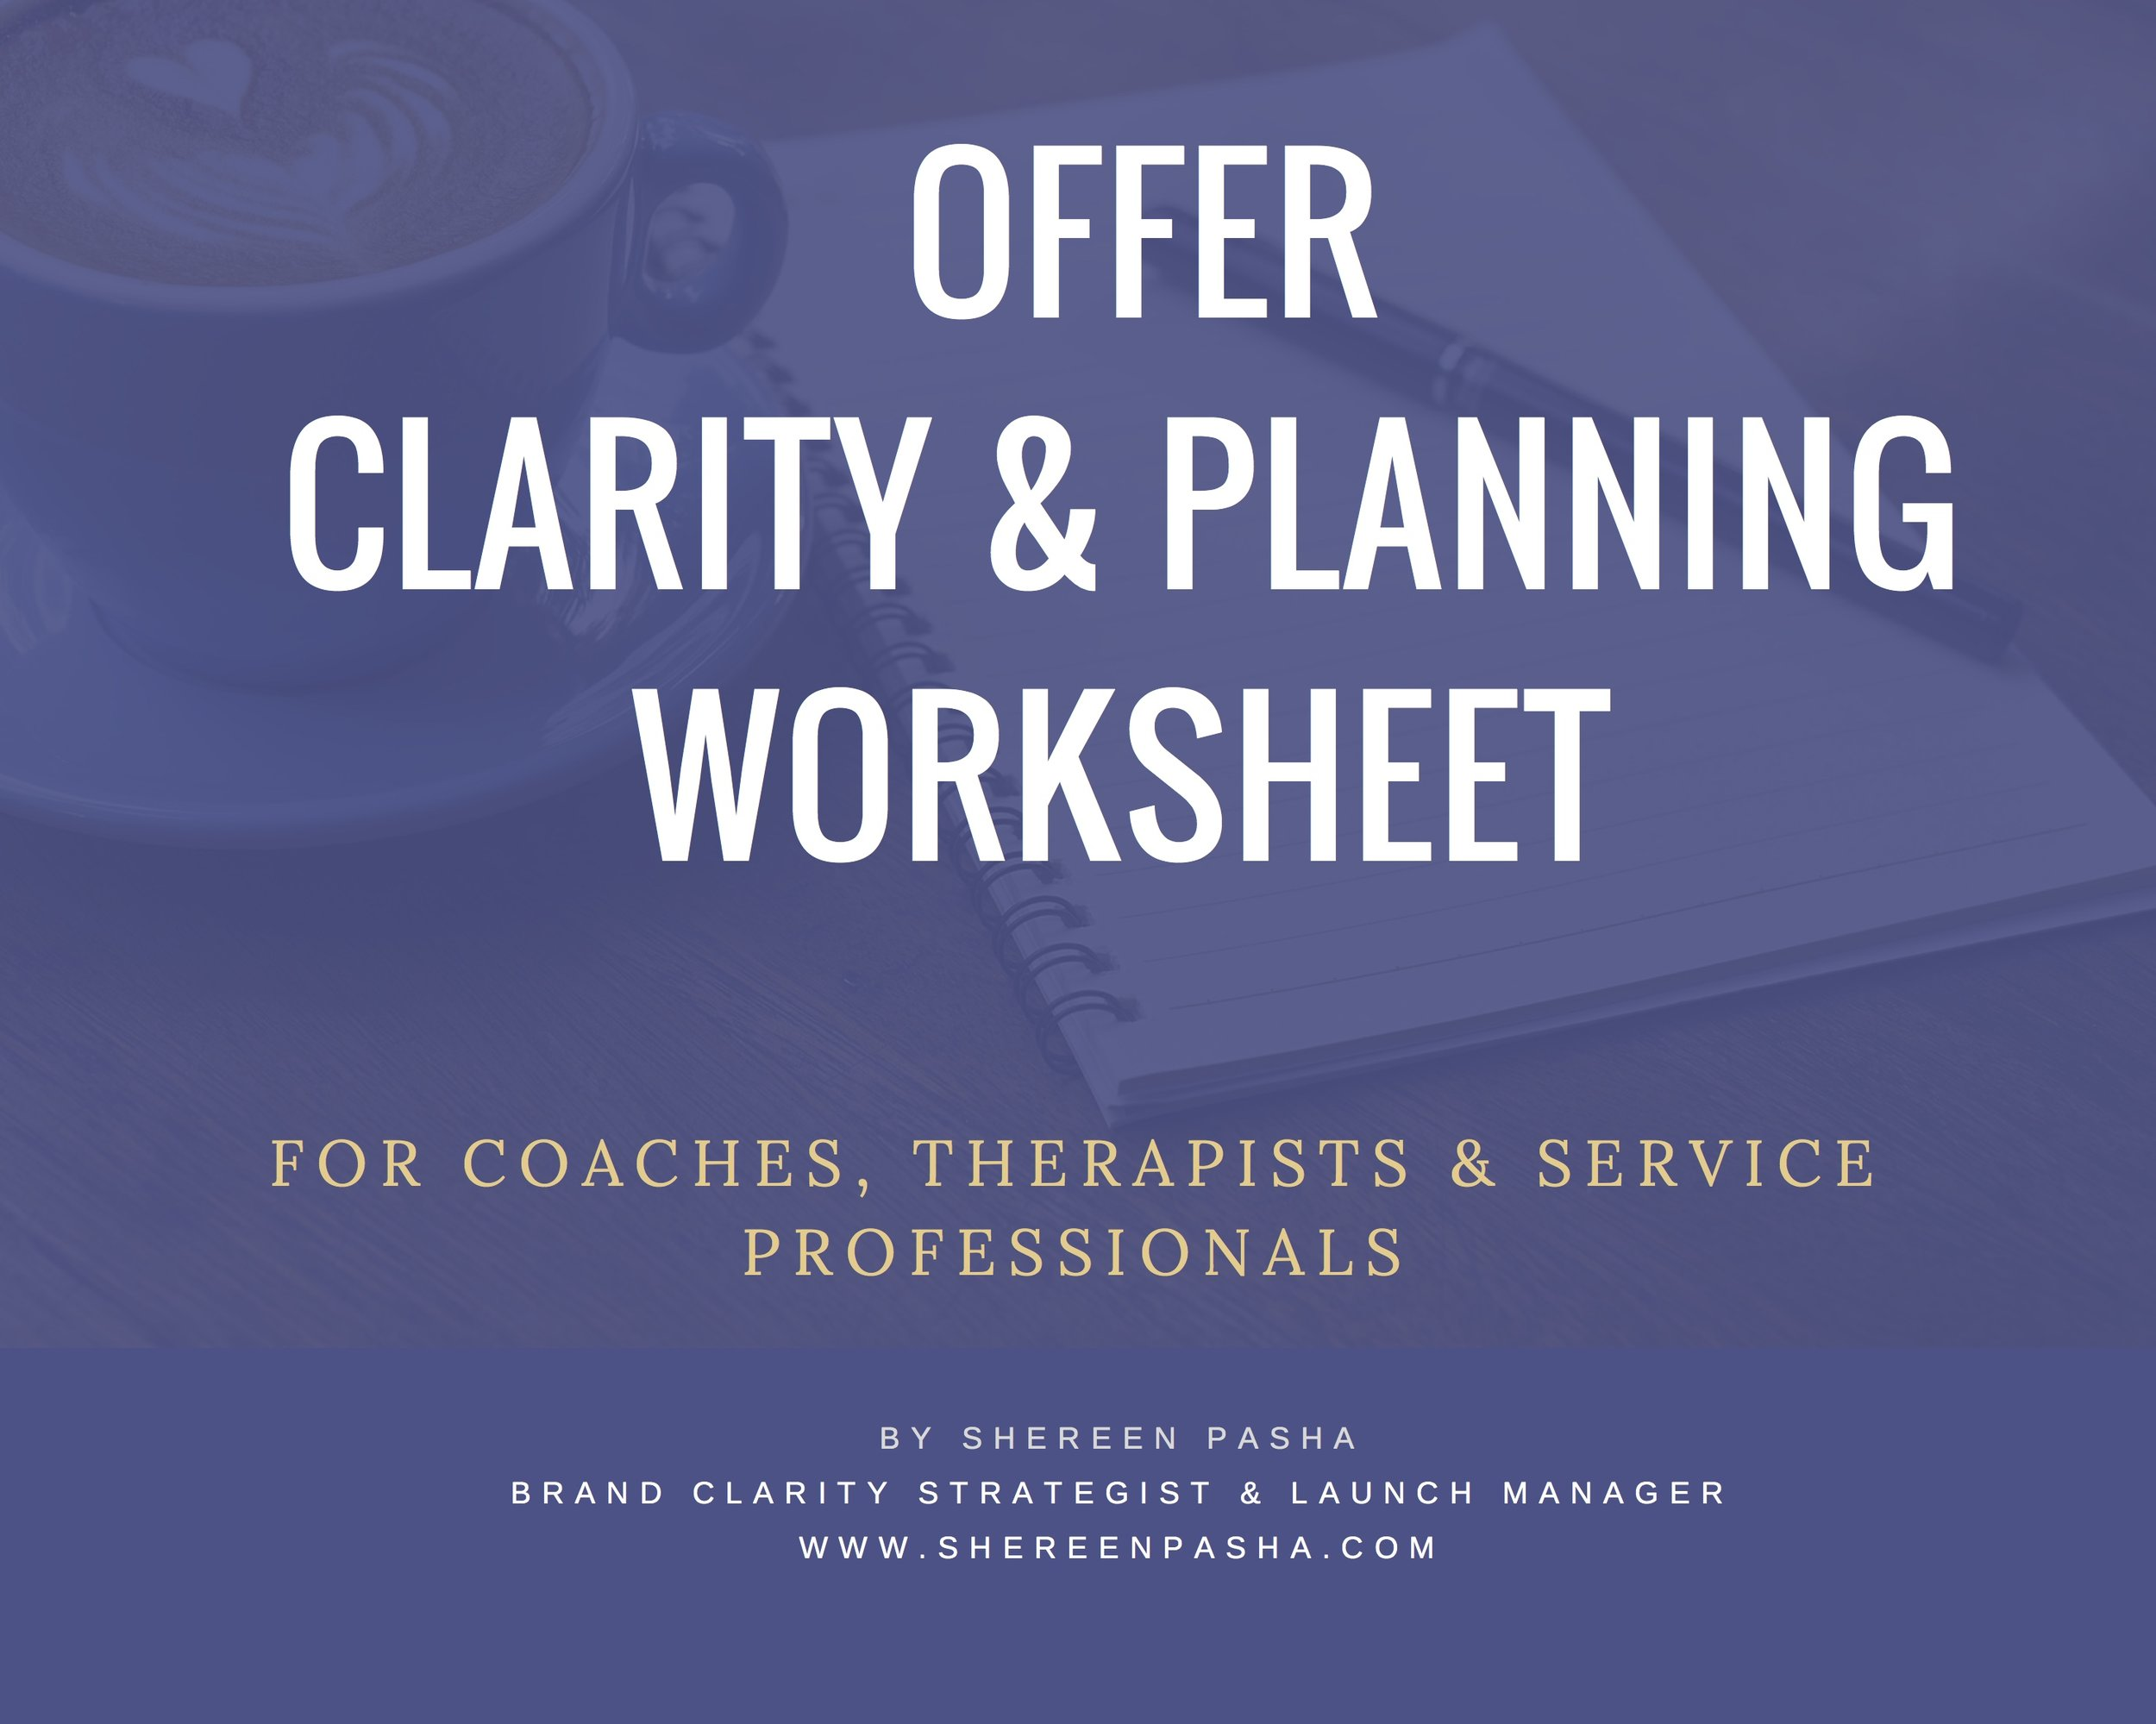 OFFER-CLARITY-PLANNING-WORKSHEET-.jpg